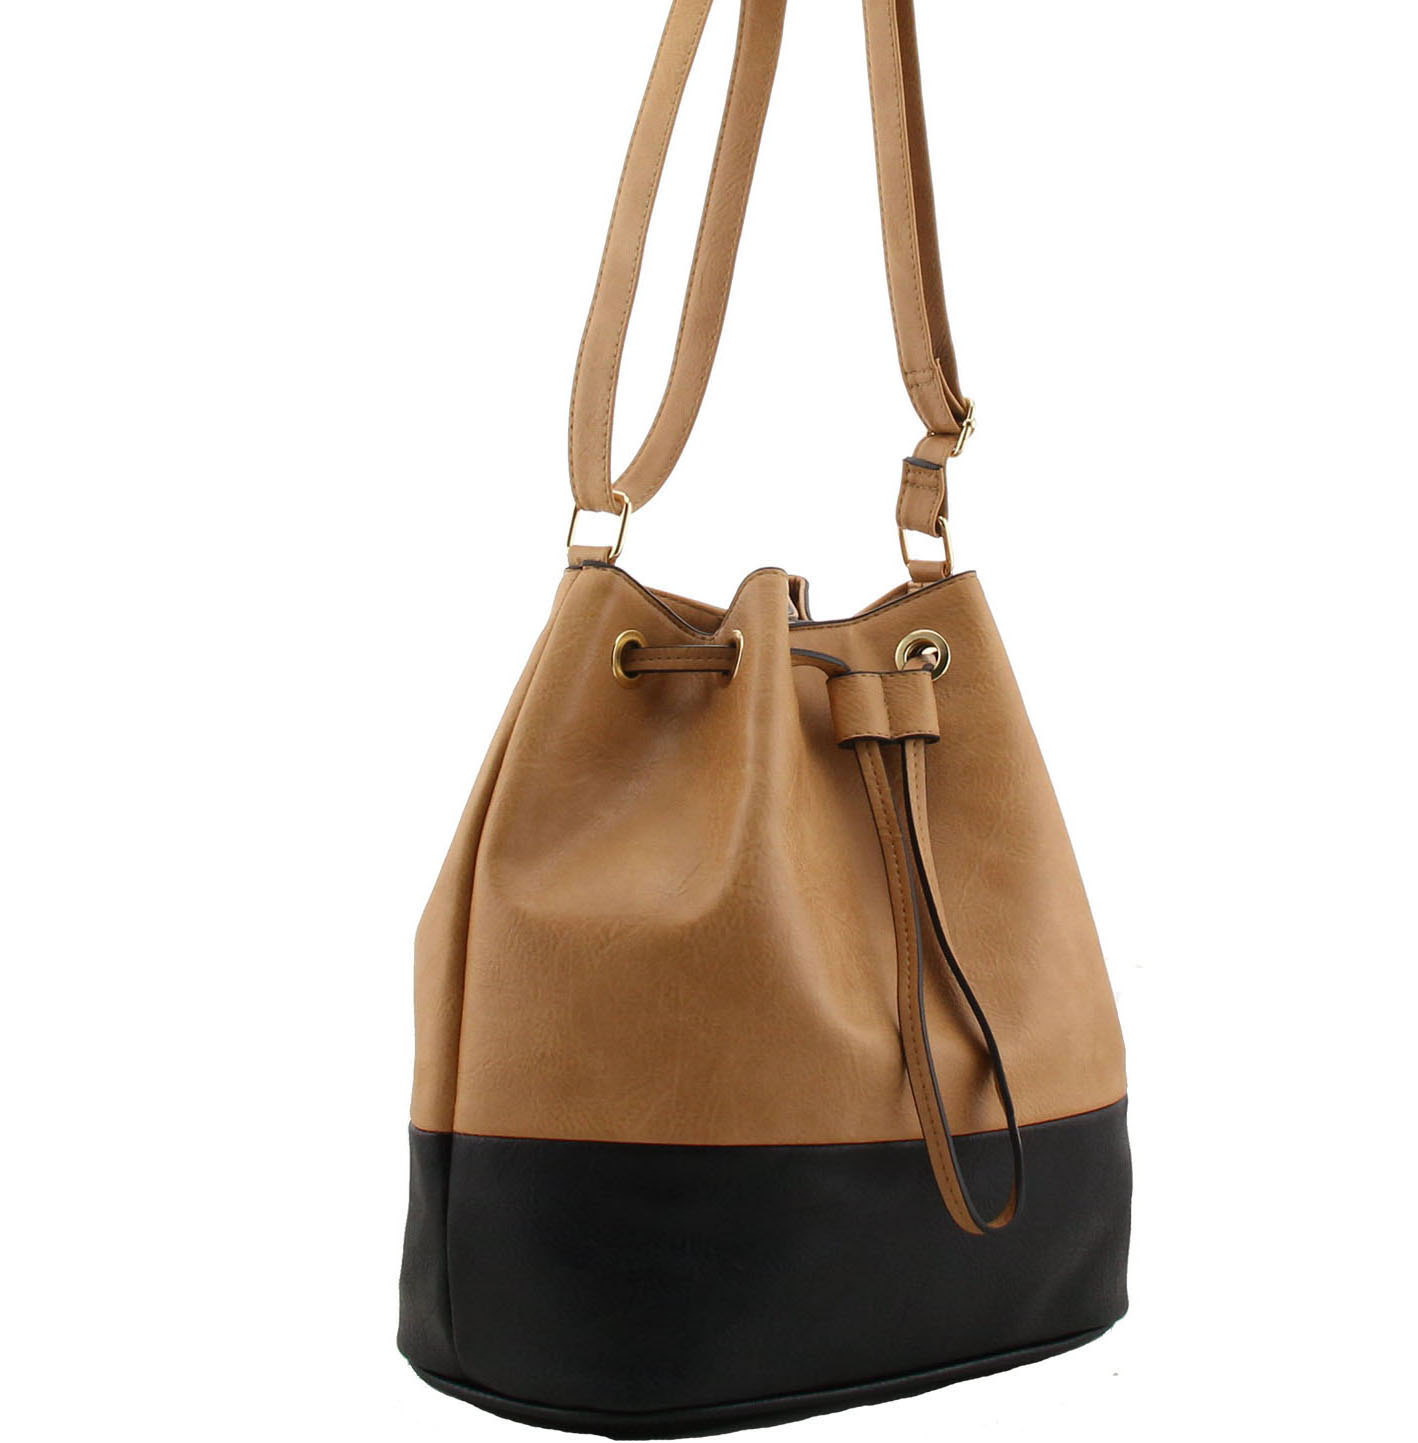 66ba769383e 368 black tan duffle handbag ~ BAGZONE - Suppliers of Fashion ...